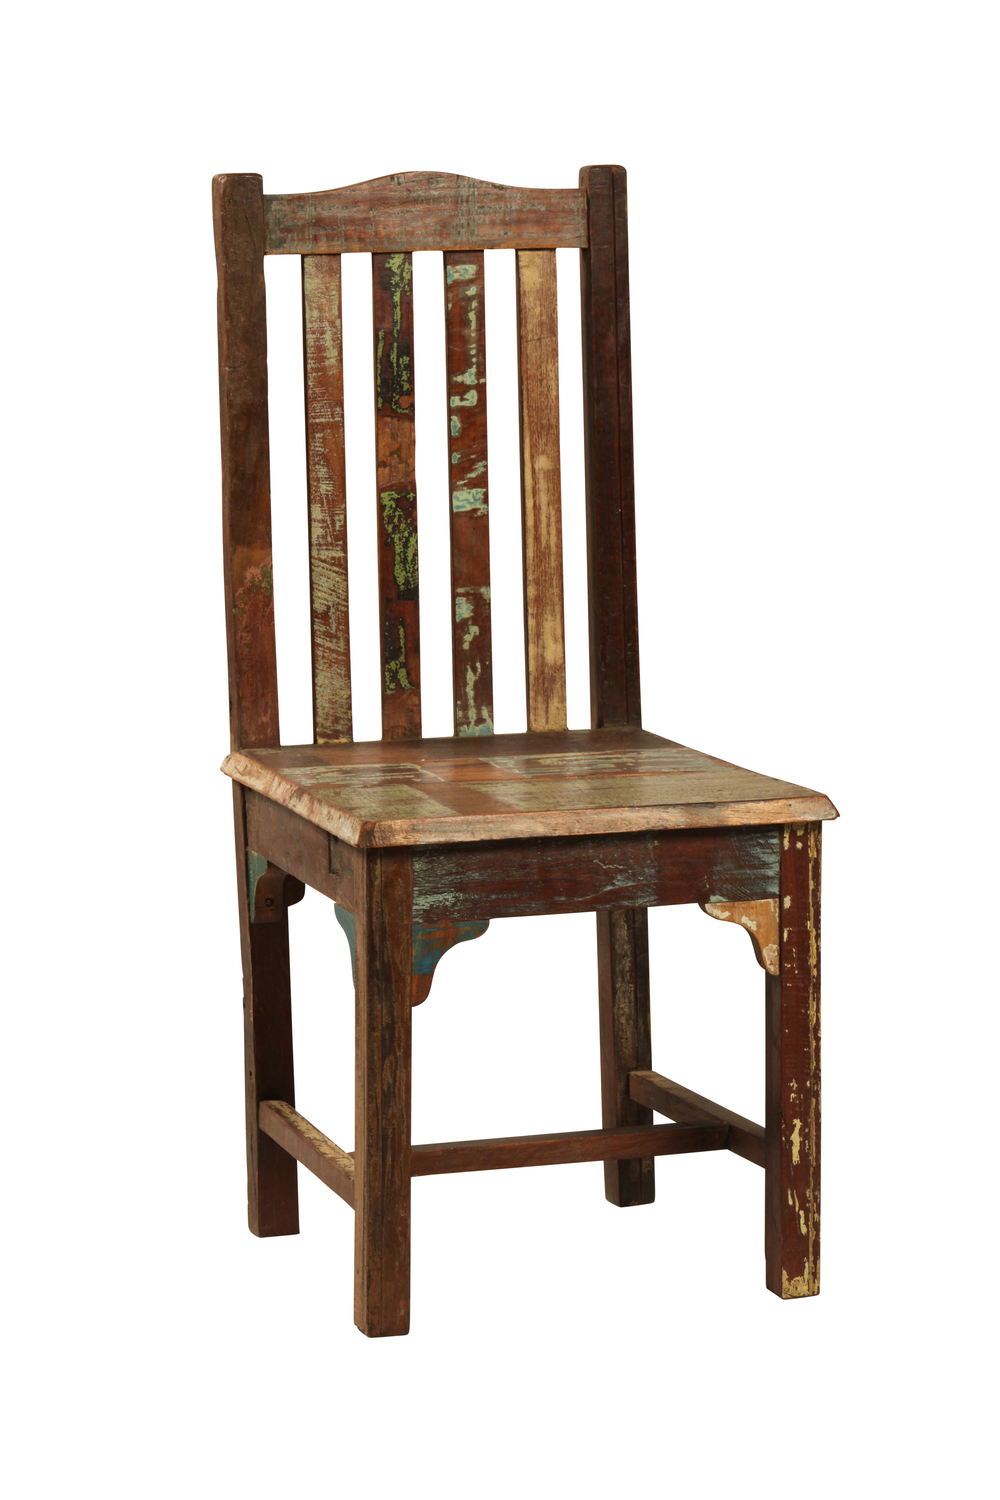 Dovetail Furniture - Nantucket Chair